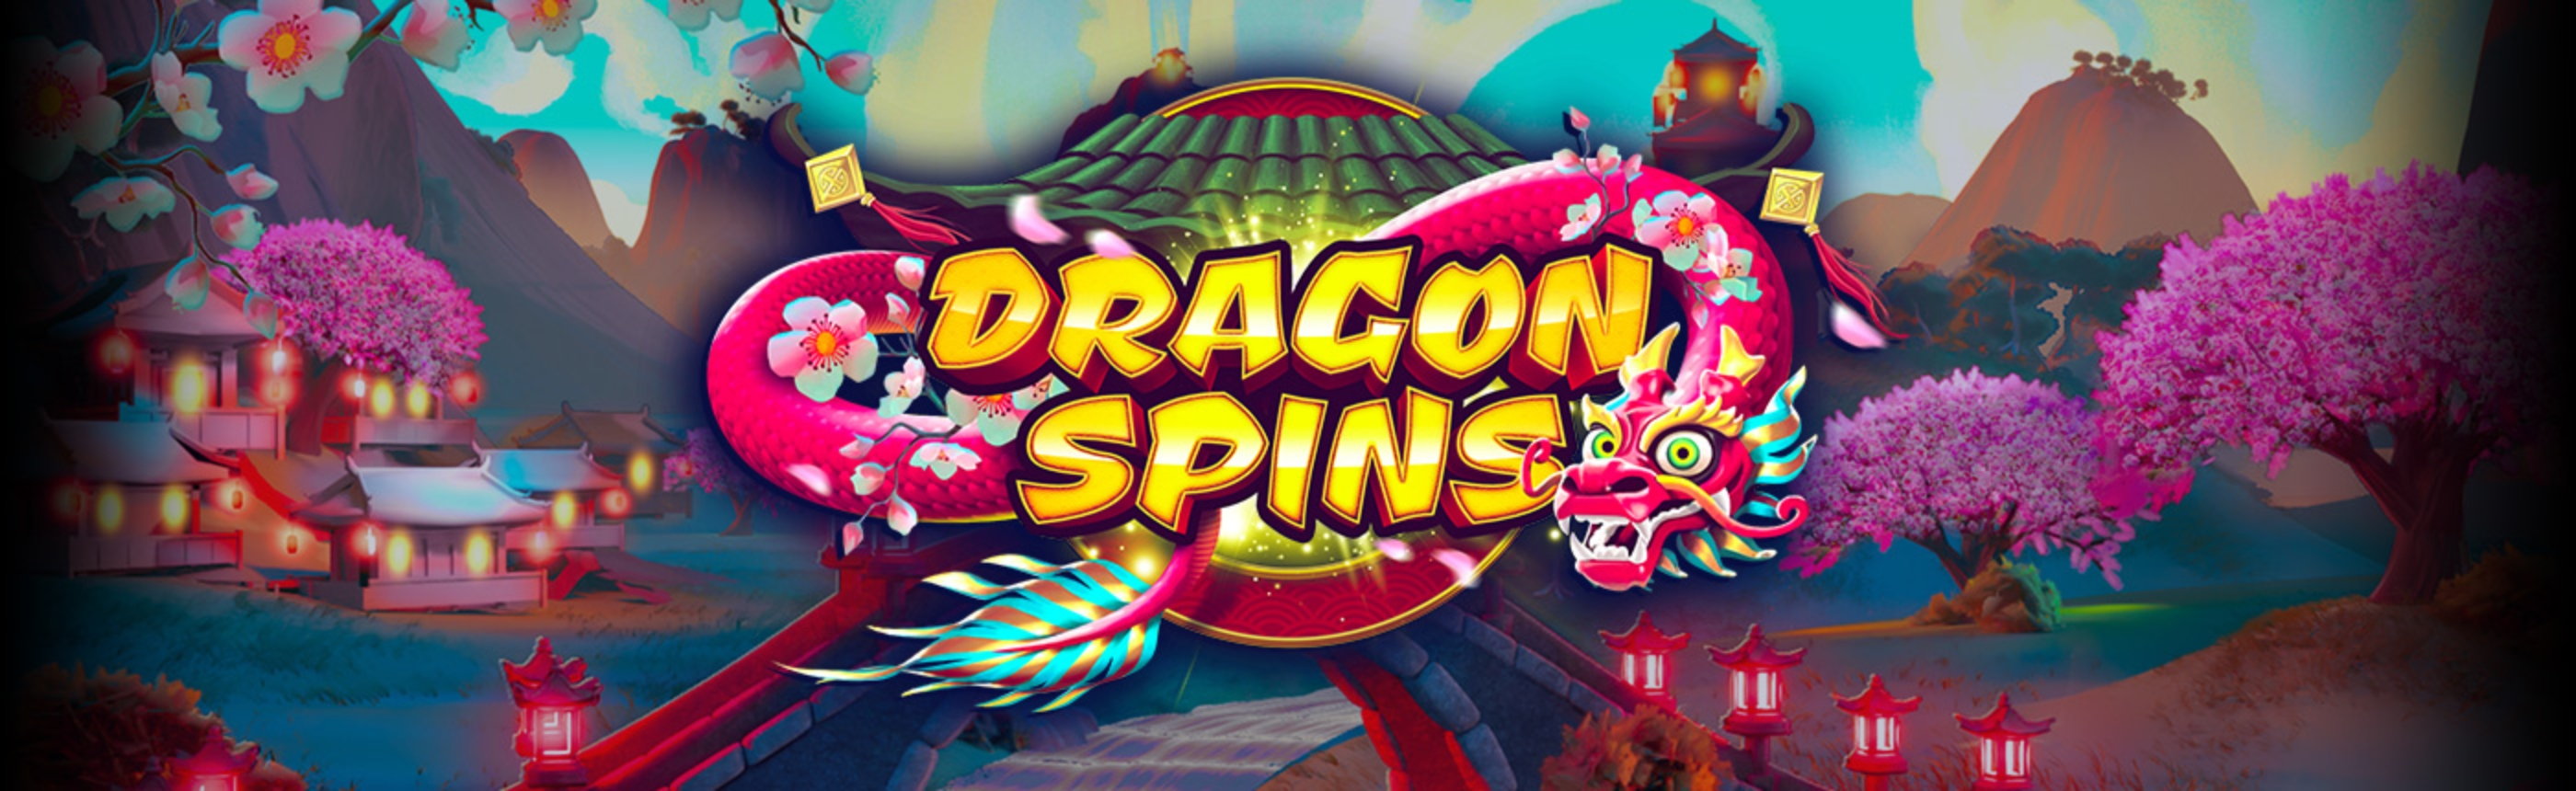 The Dragon Spins Online Slot Demo Game by Revolver Gaming